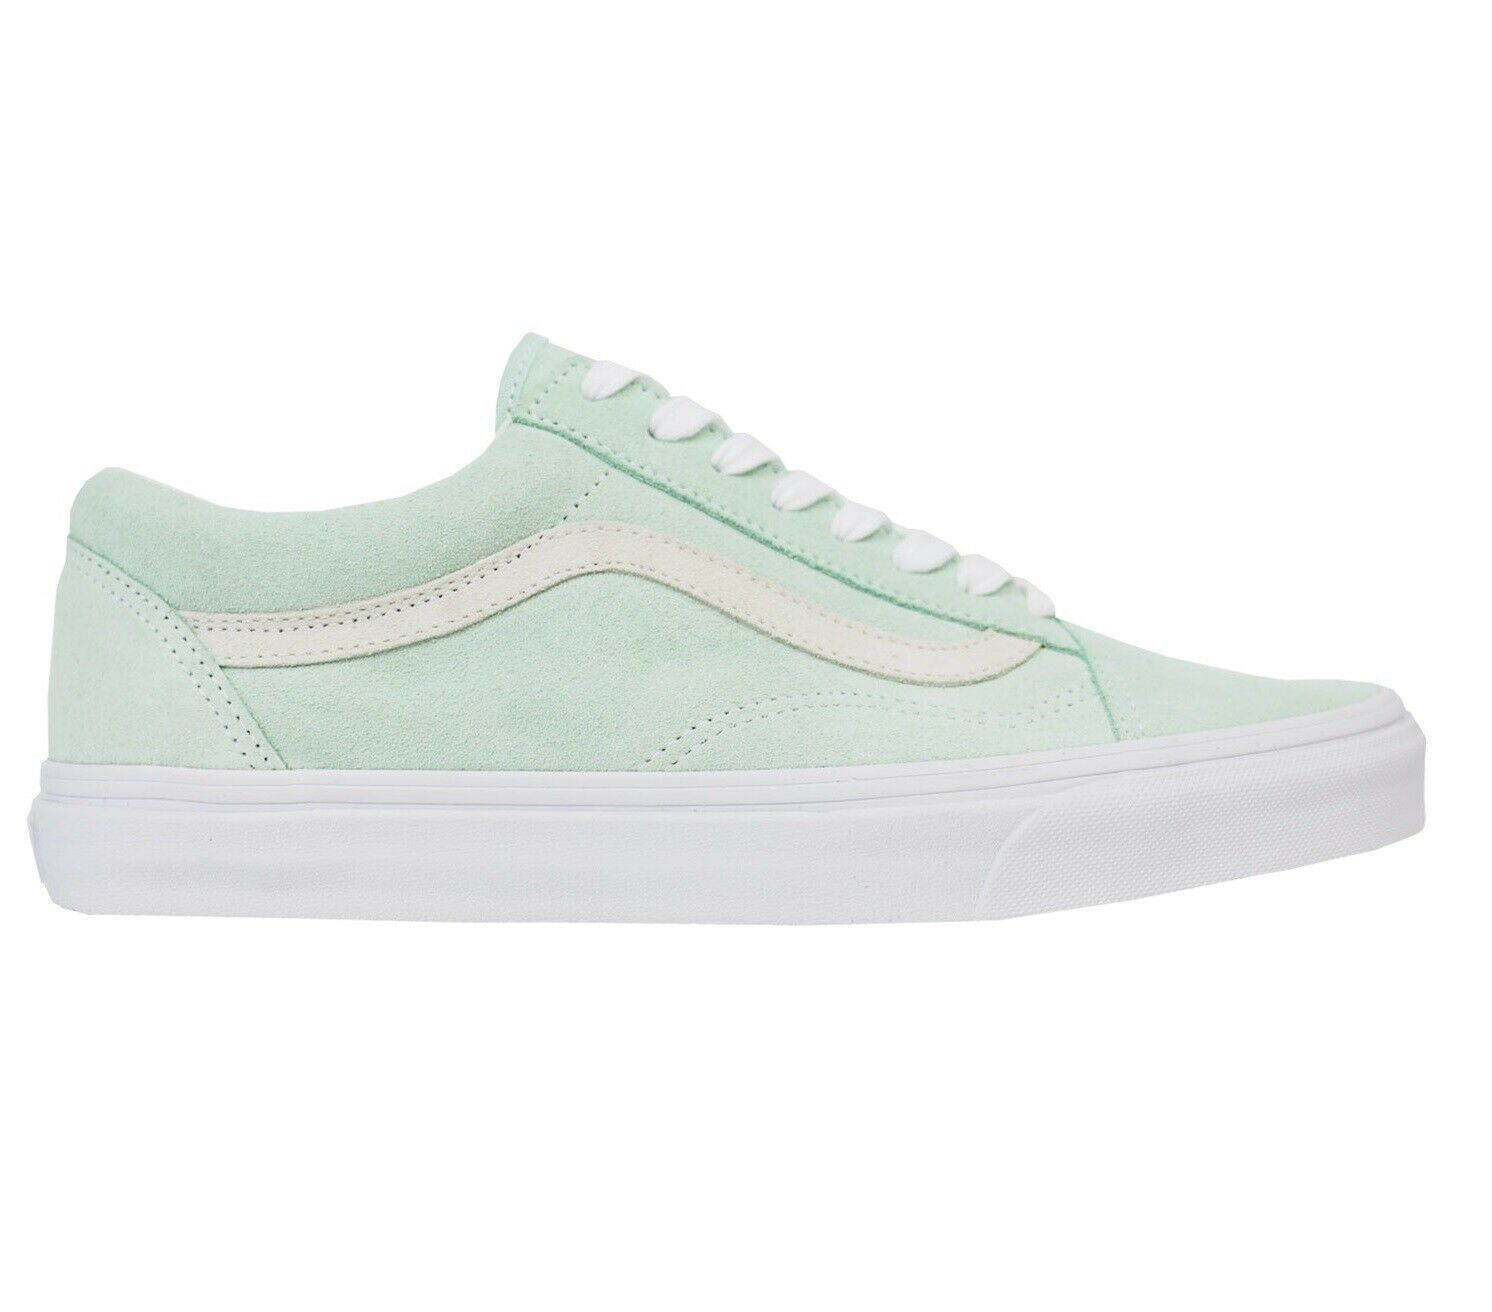 VANS Old Skool (Pastel) Pastel Suede Bay Skate Shoes Mens Size 9.5